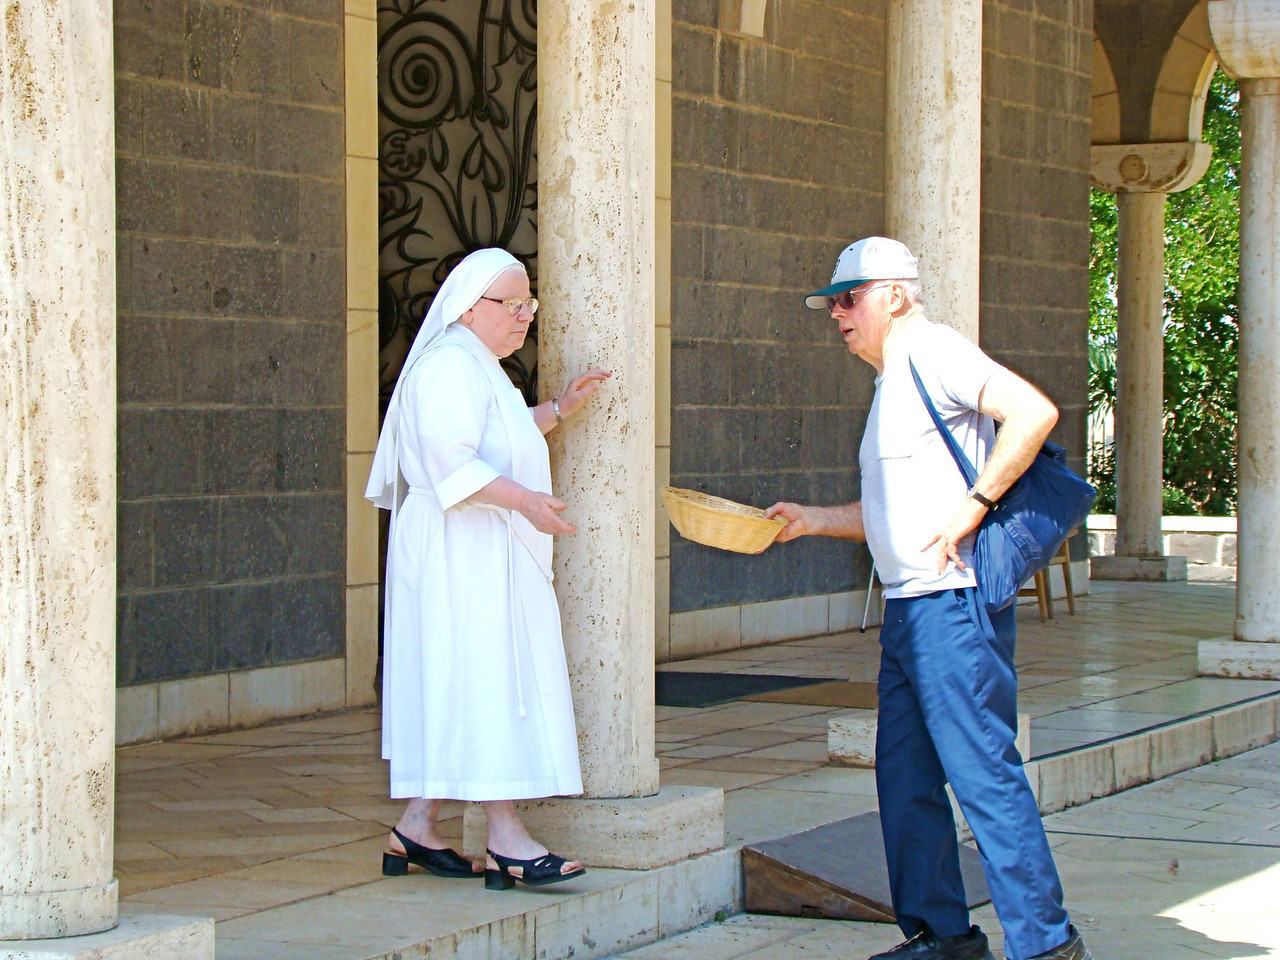 Nun Requiring Donation from Group